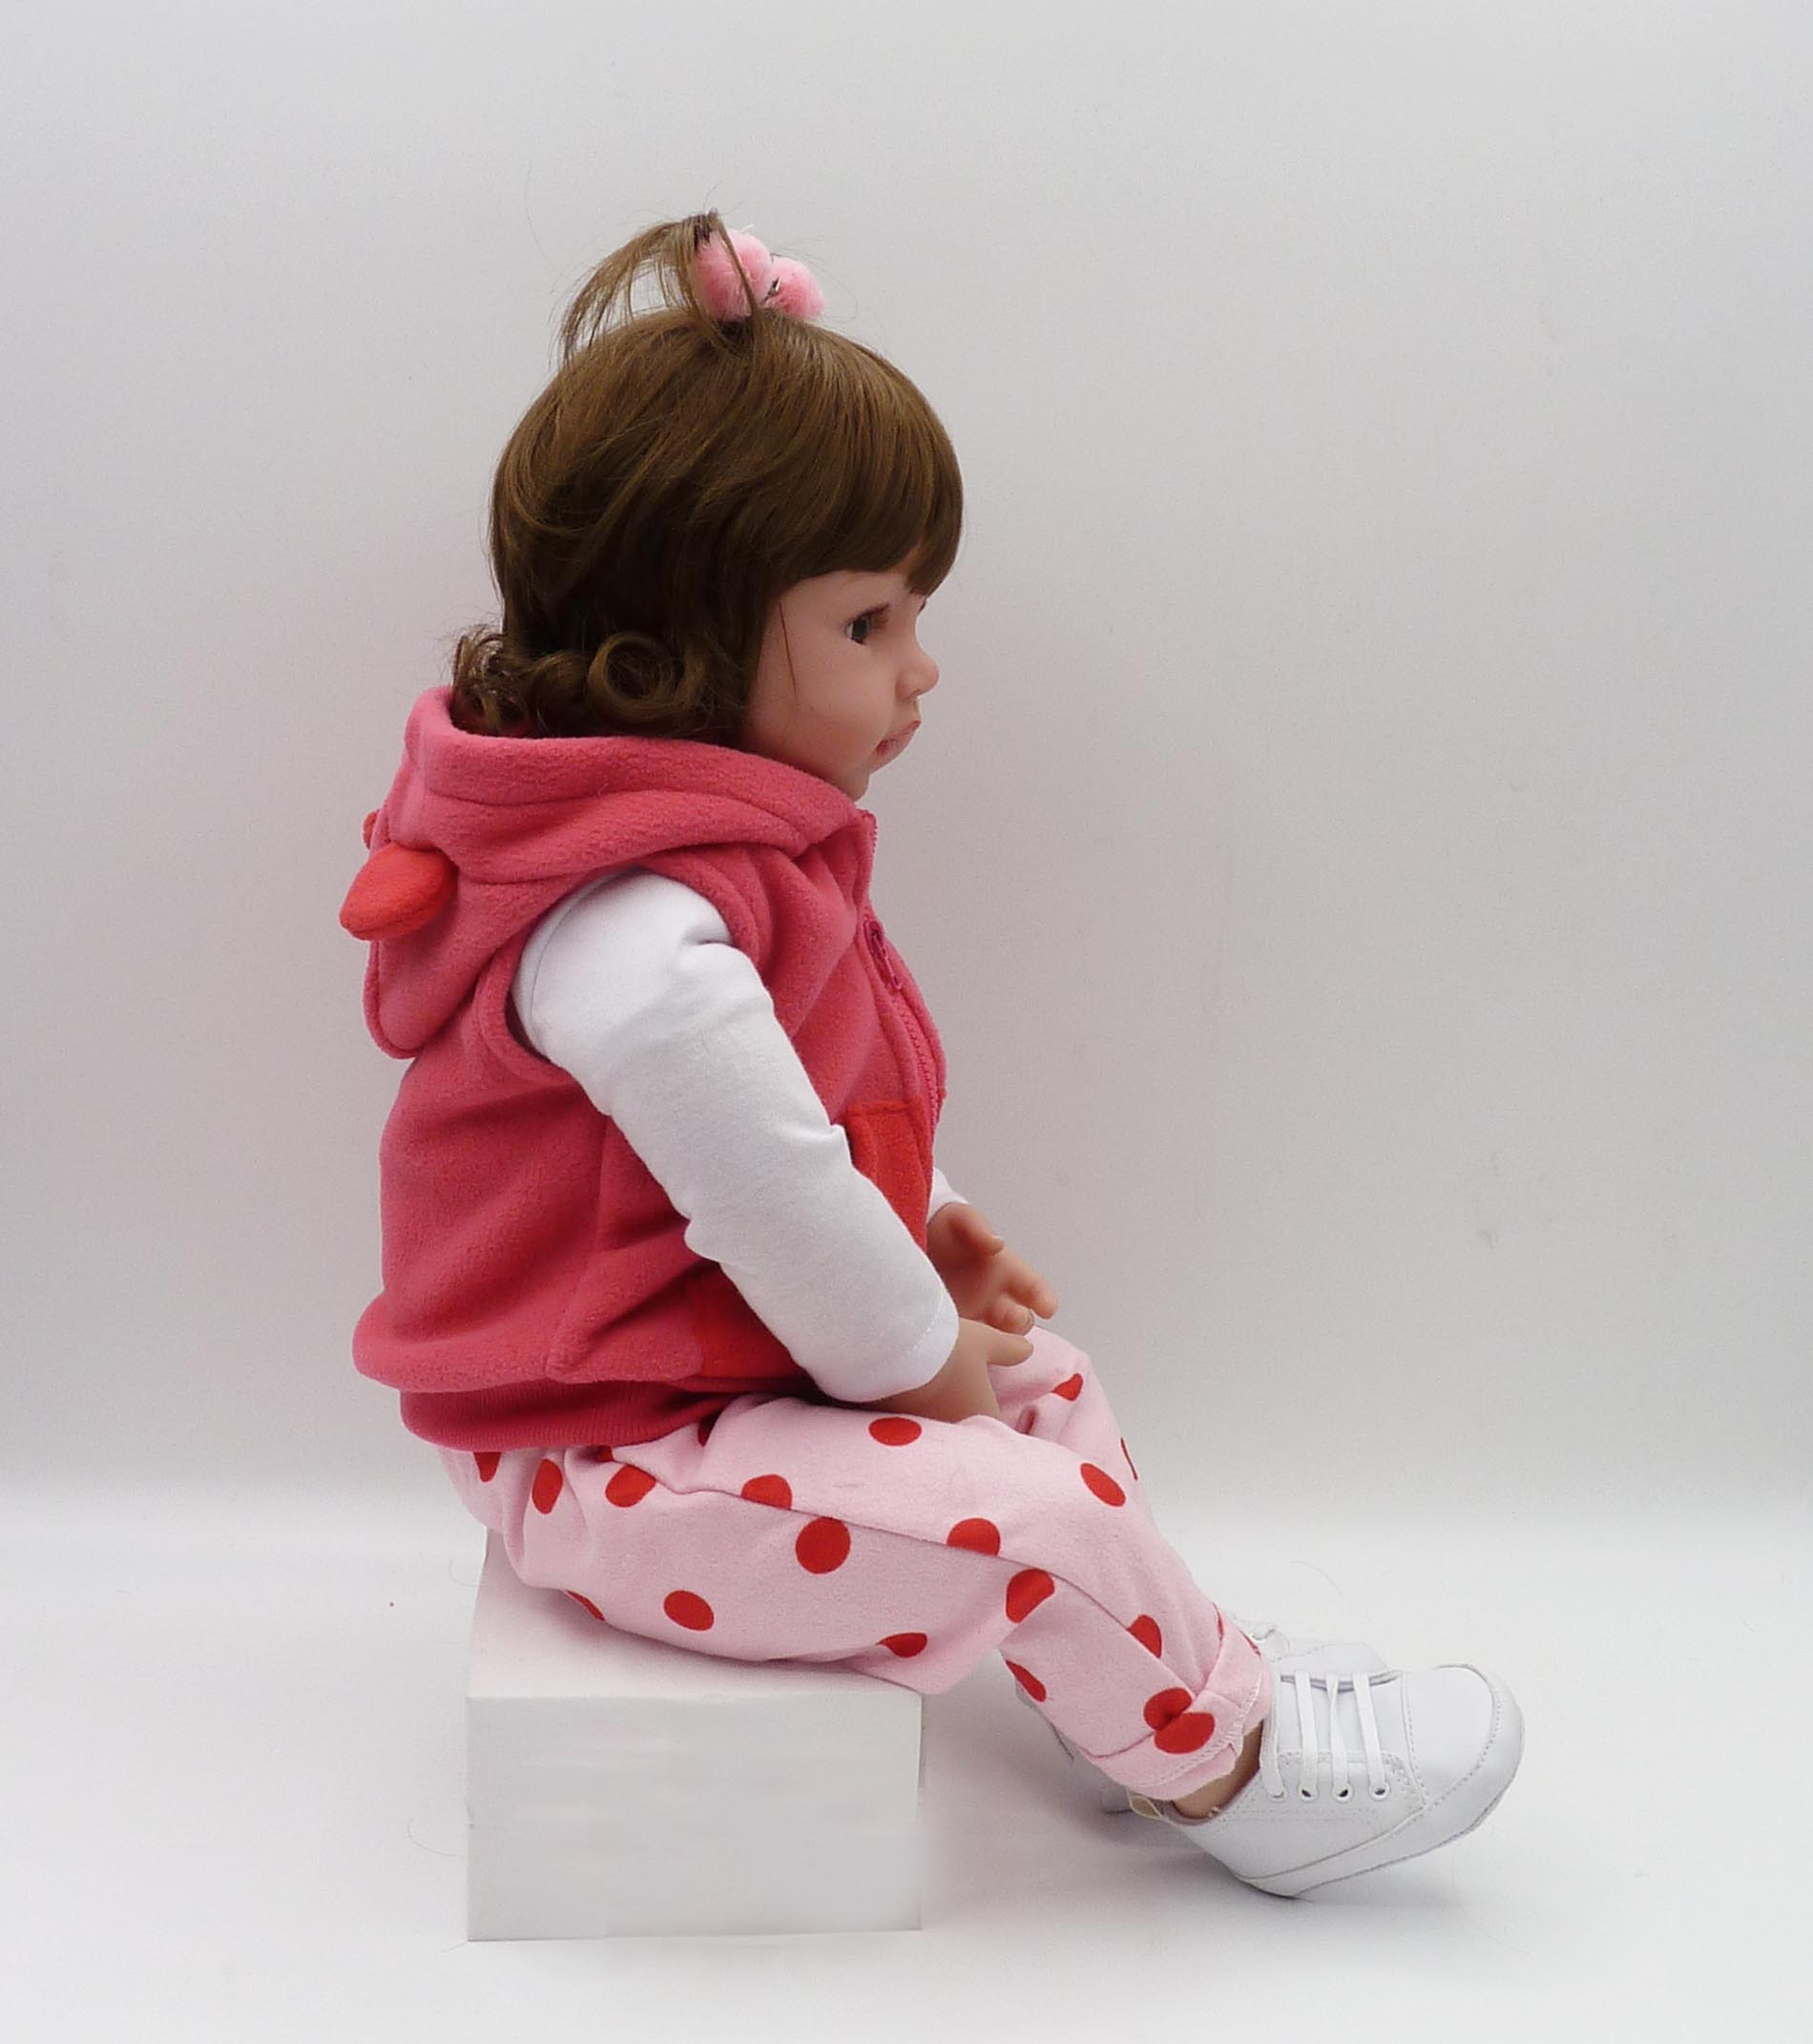 Image 2 - bebe reborn19inch 48cm lifelike doll baby newborn wholesale toys for children Christmas gift and birthday gift doll toys-in Dolls from Toys & Hobbies